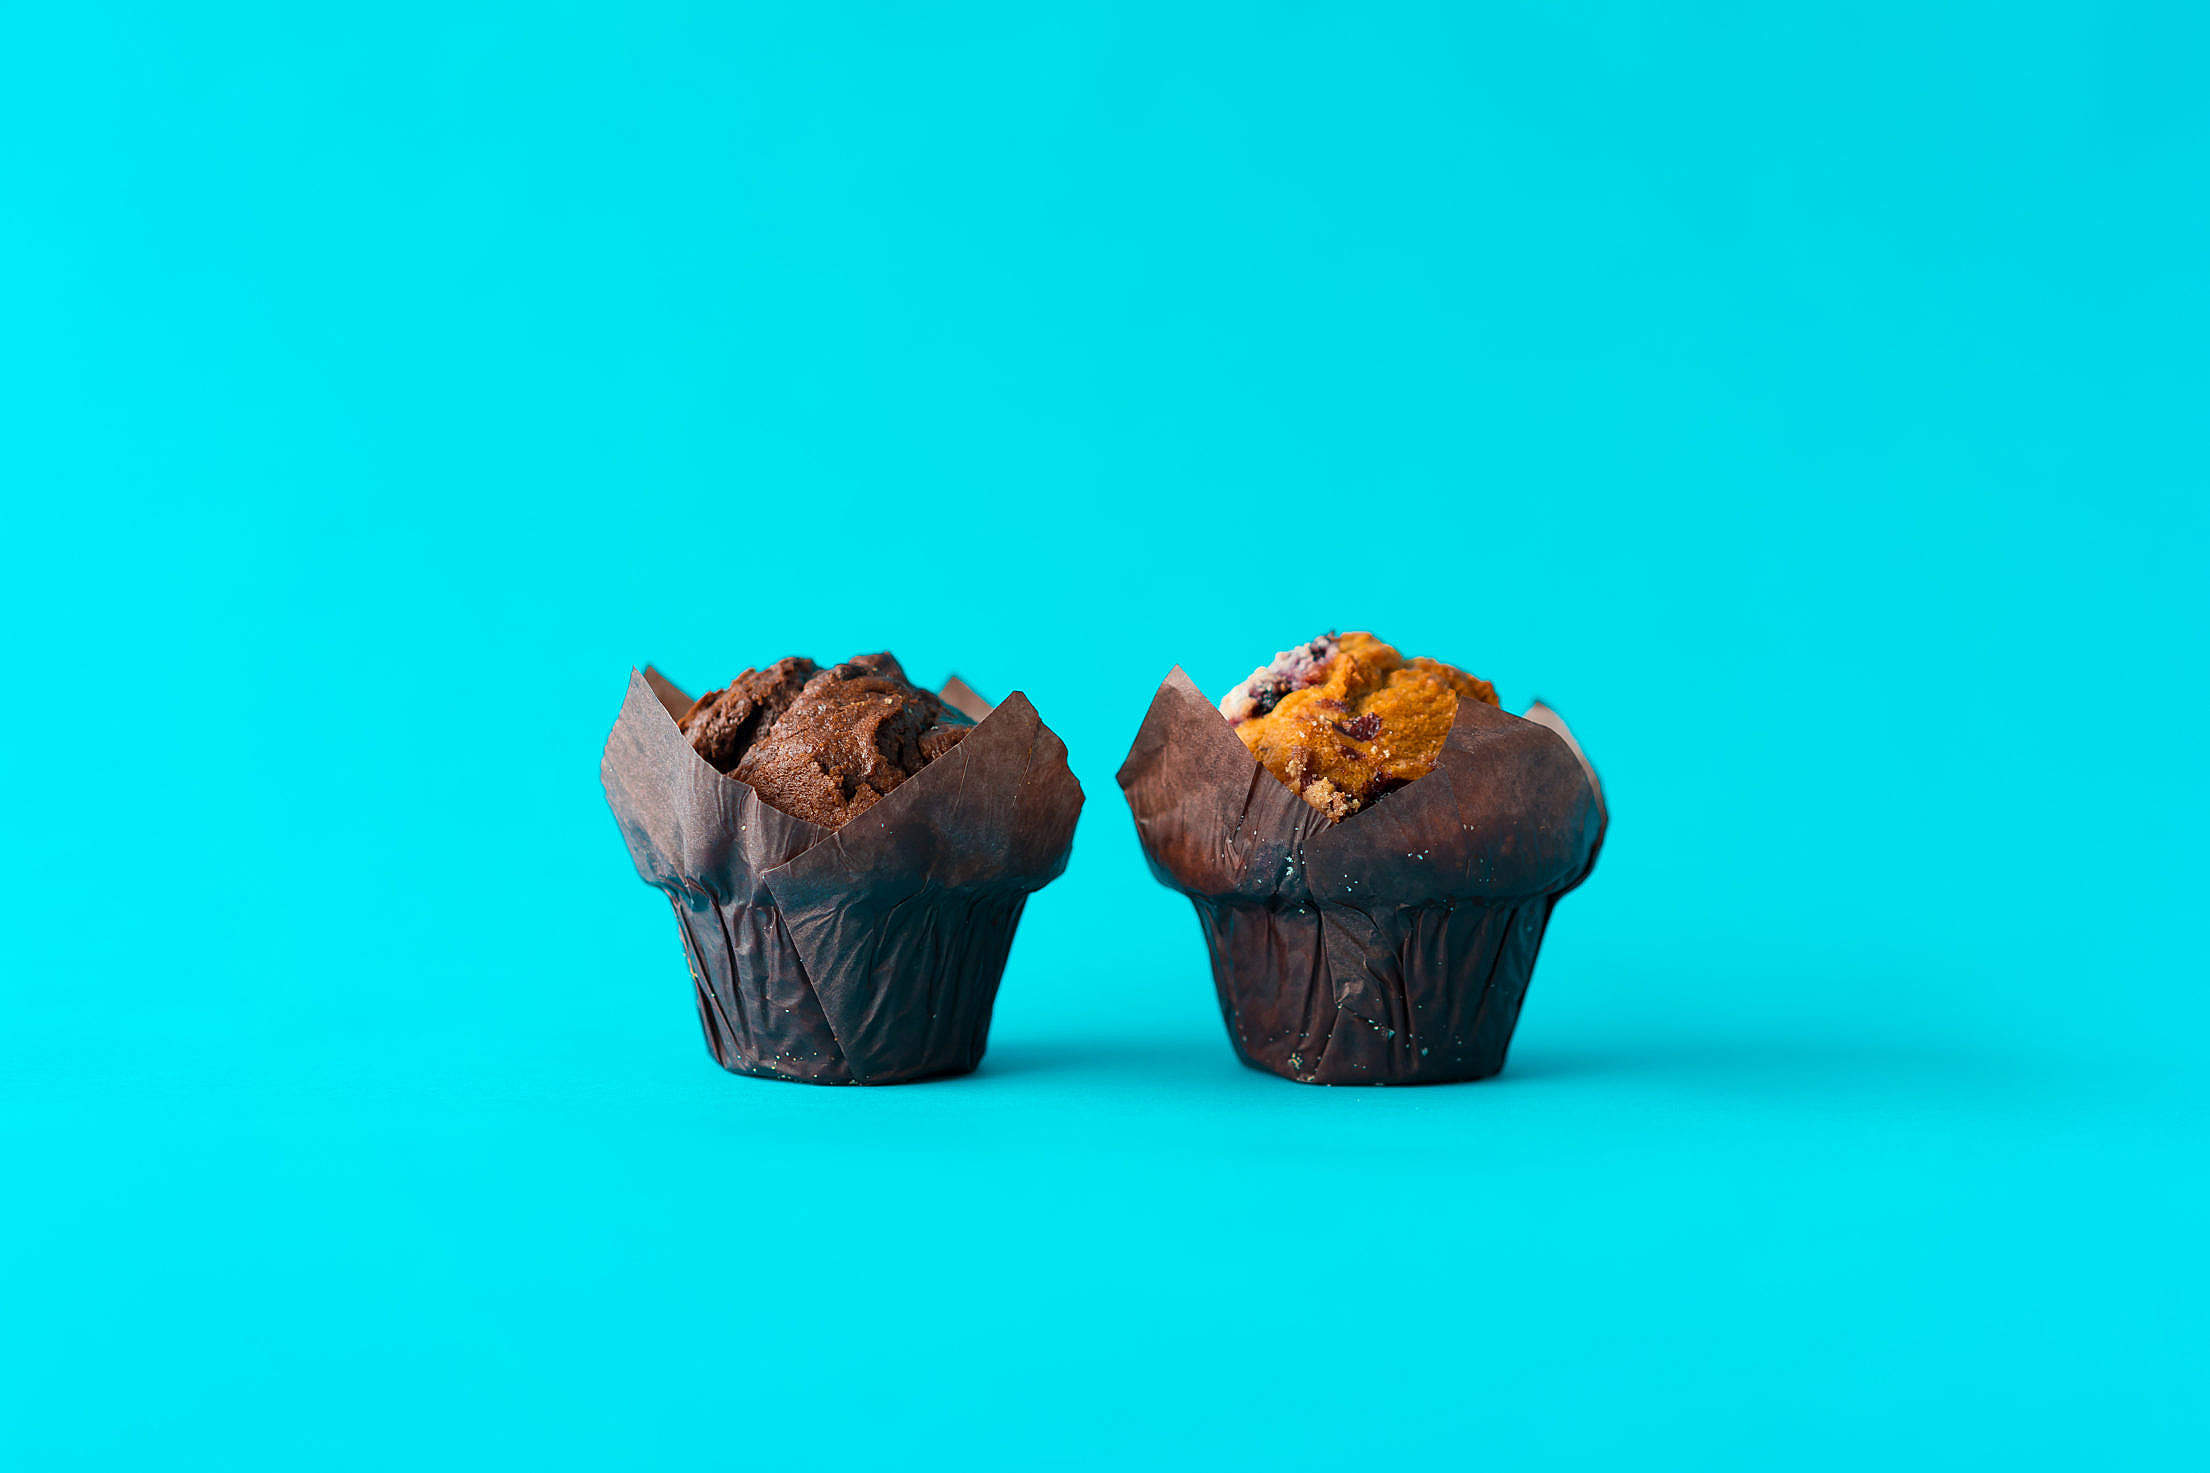 Two Muffins Free Stock Photo